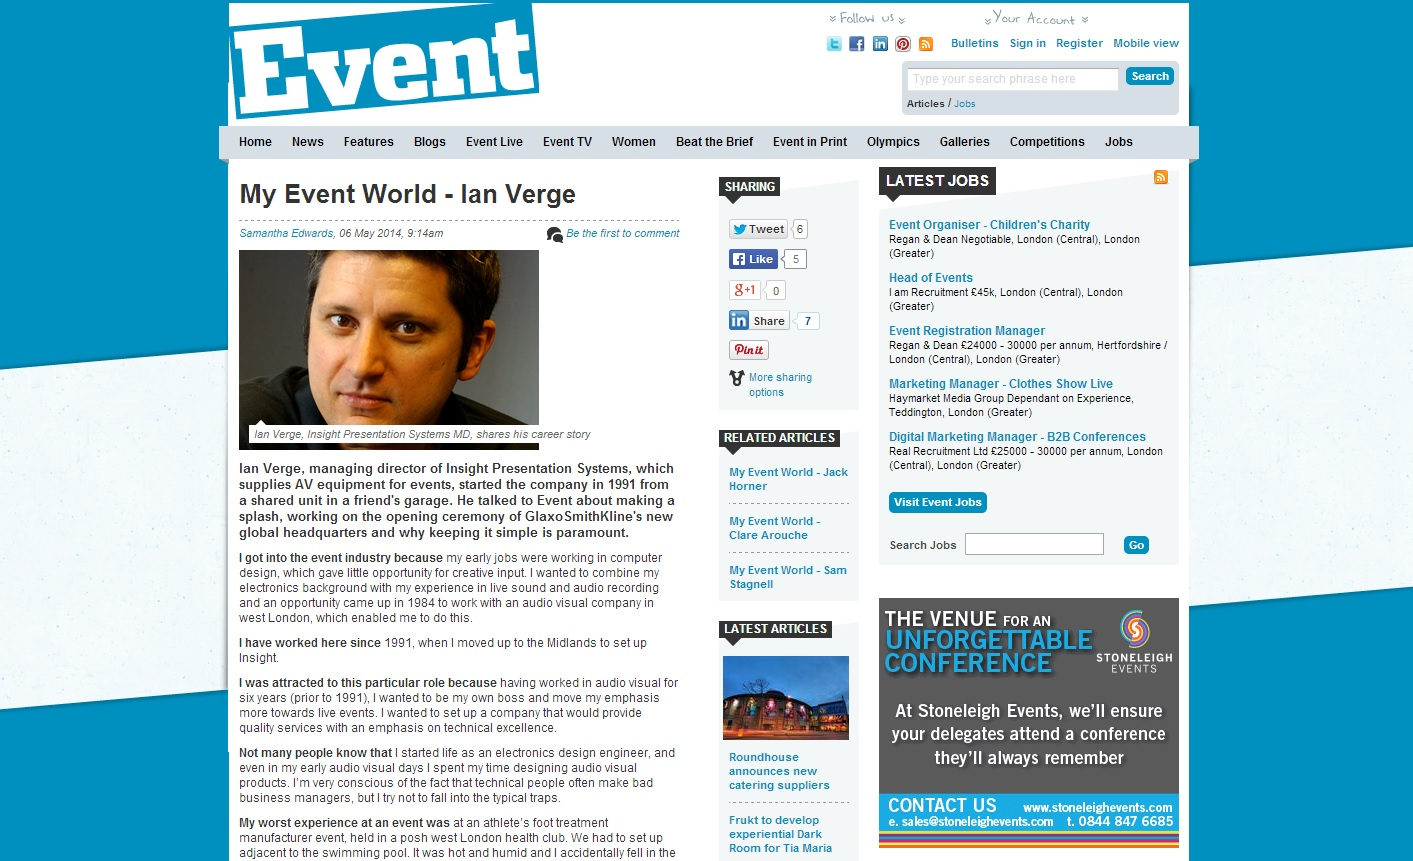 Event magazine - My Event World